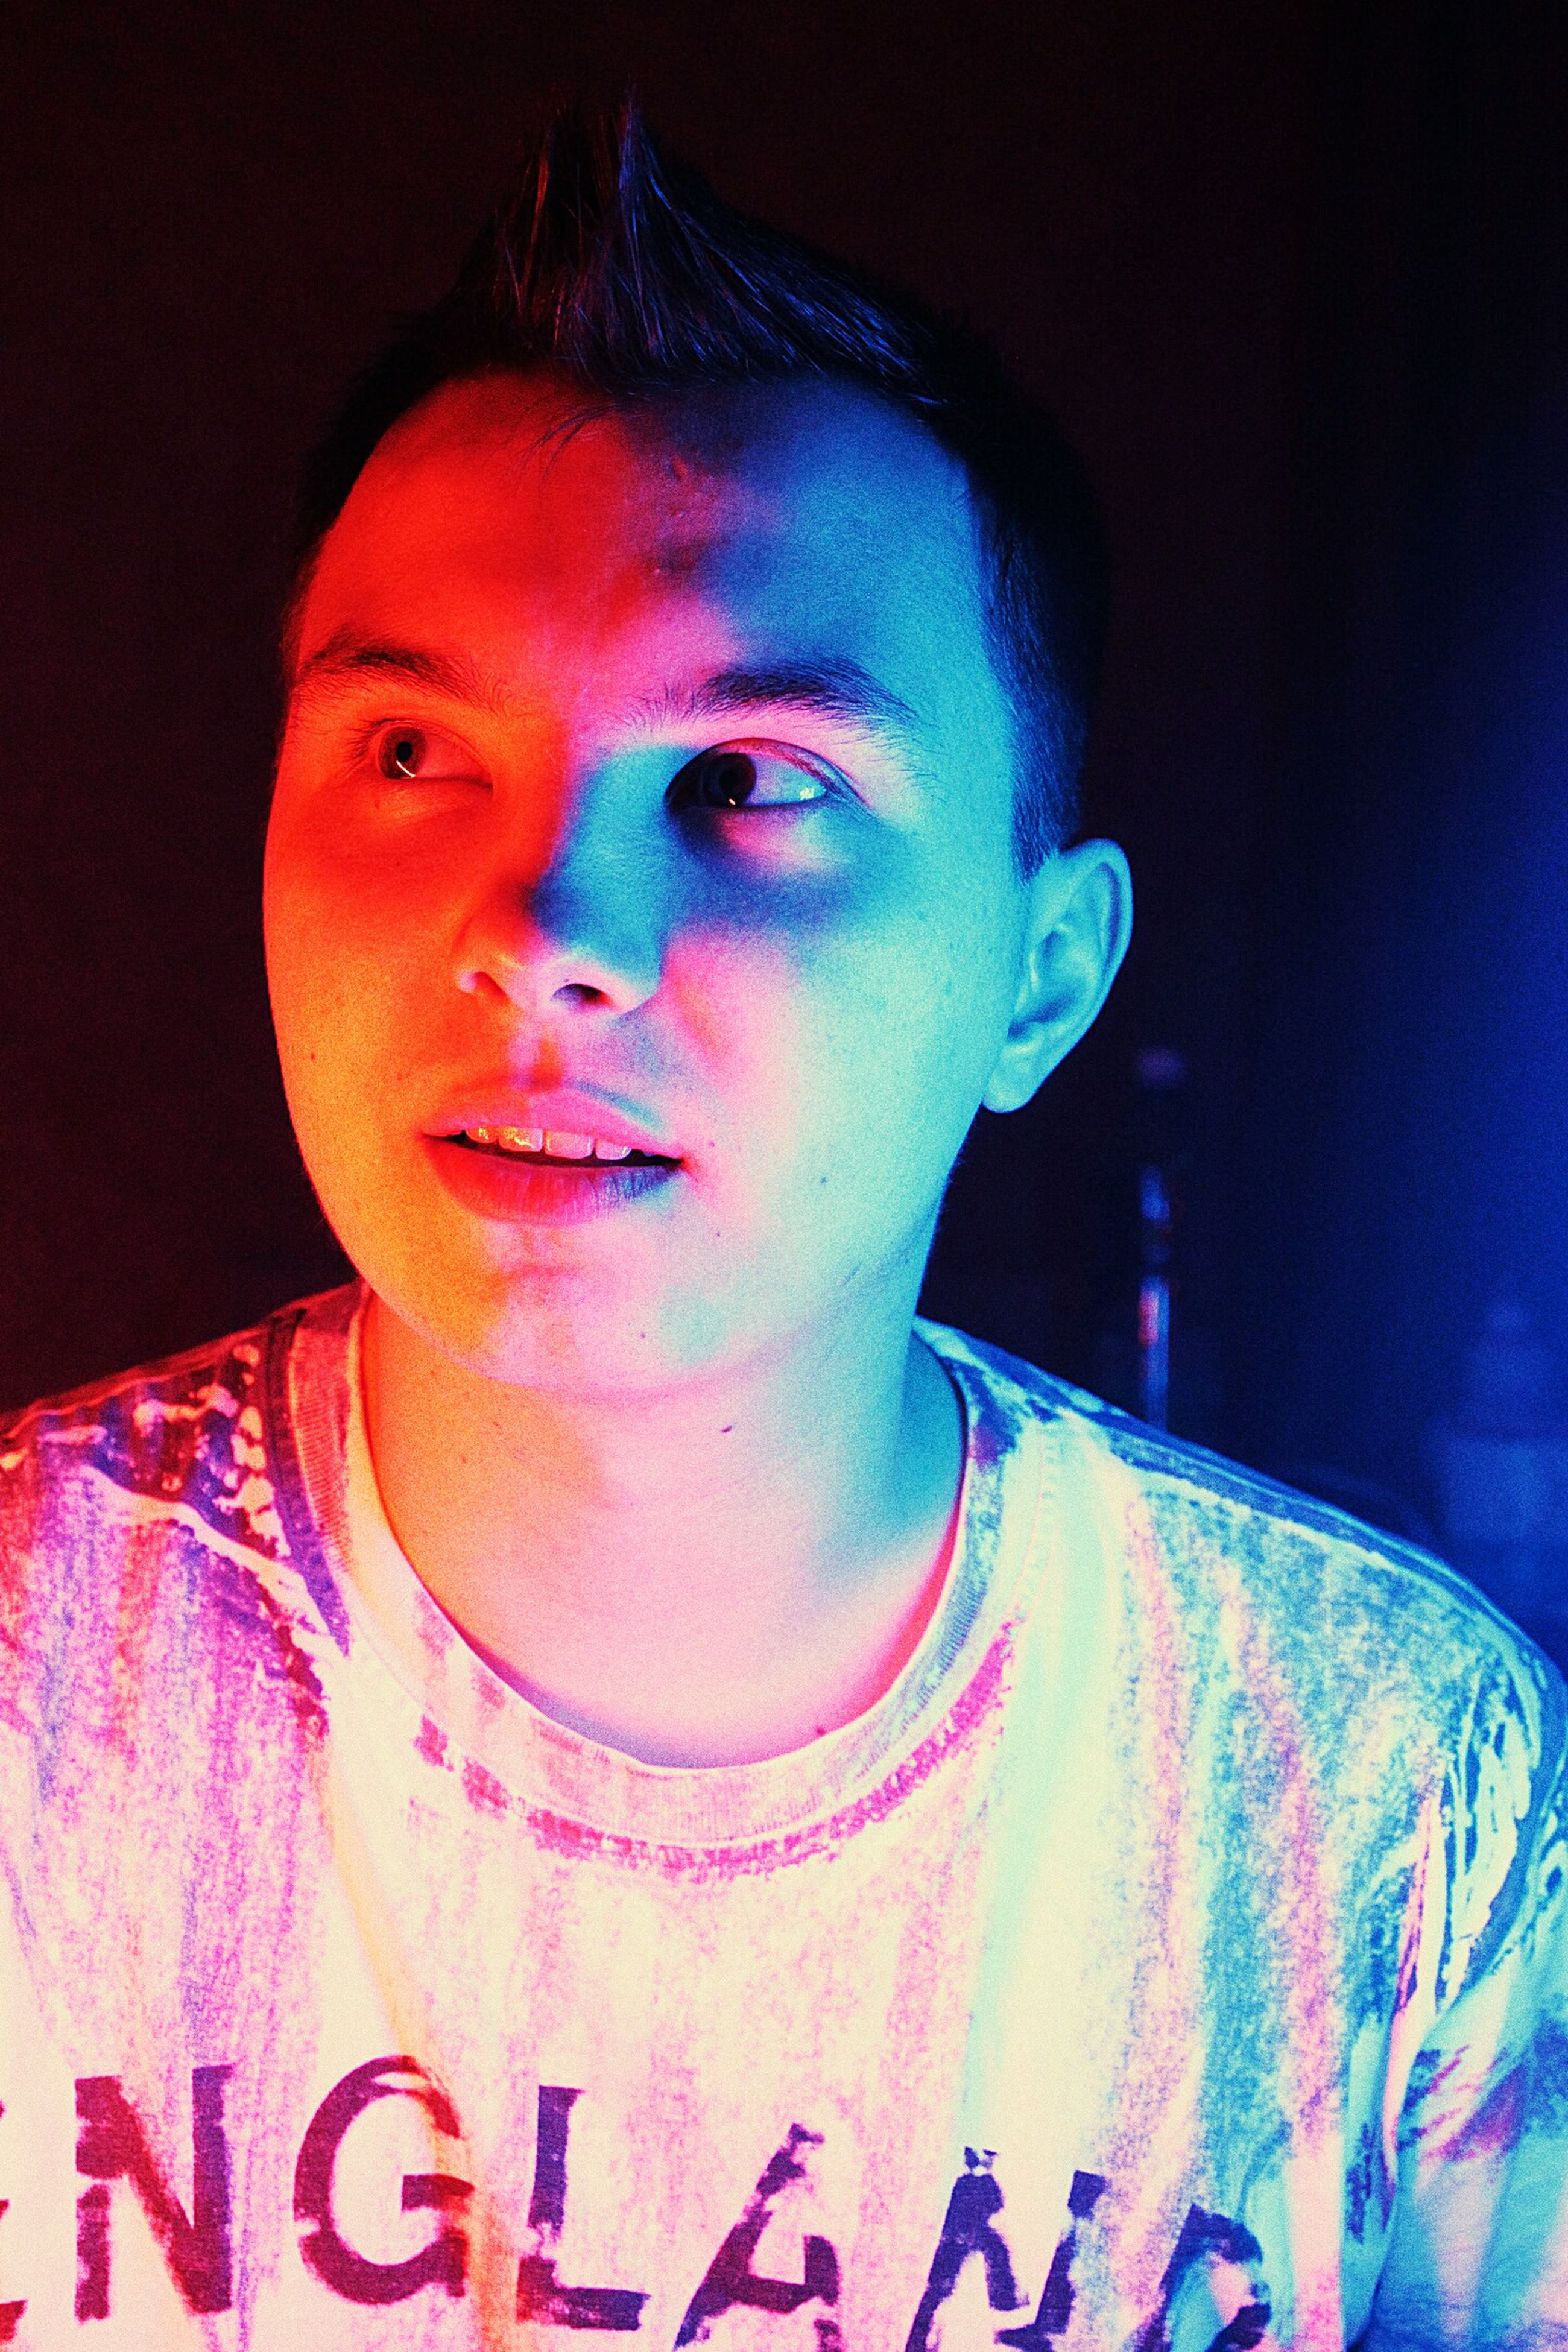 lifestyles, front view, multi colored, looking at camera, portrait, one person, neon, real people, illuminated, night, young adult, indoors, only women, neon colored, people, adult